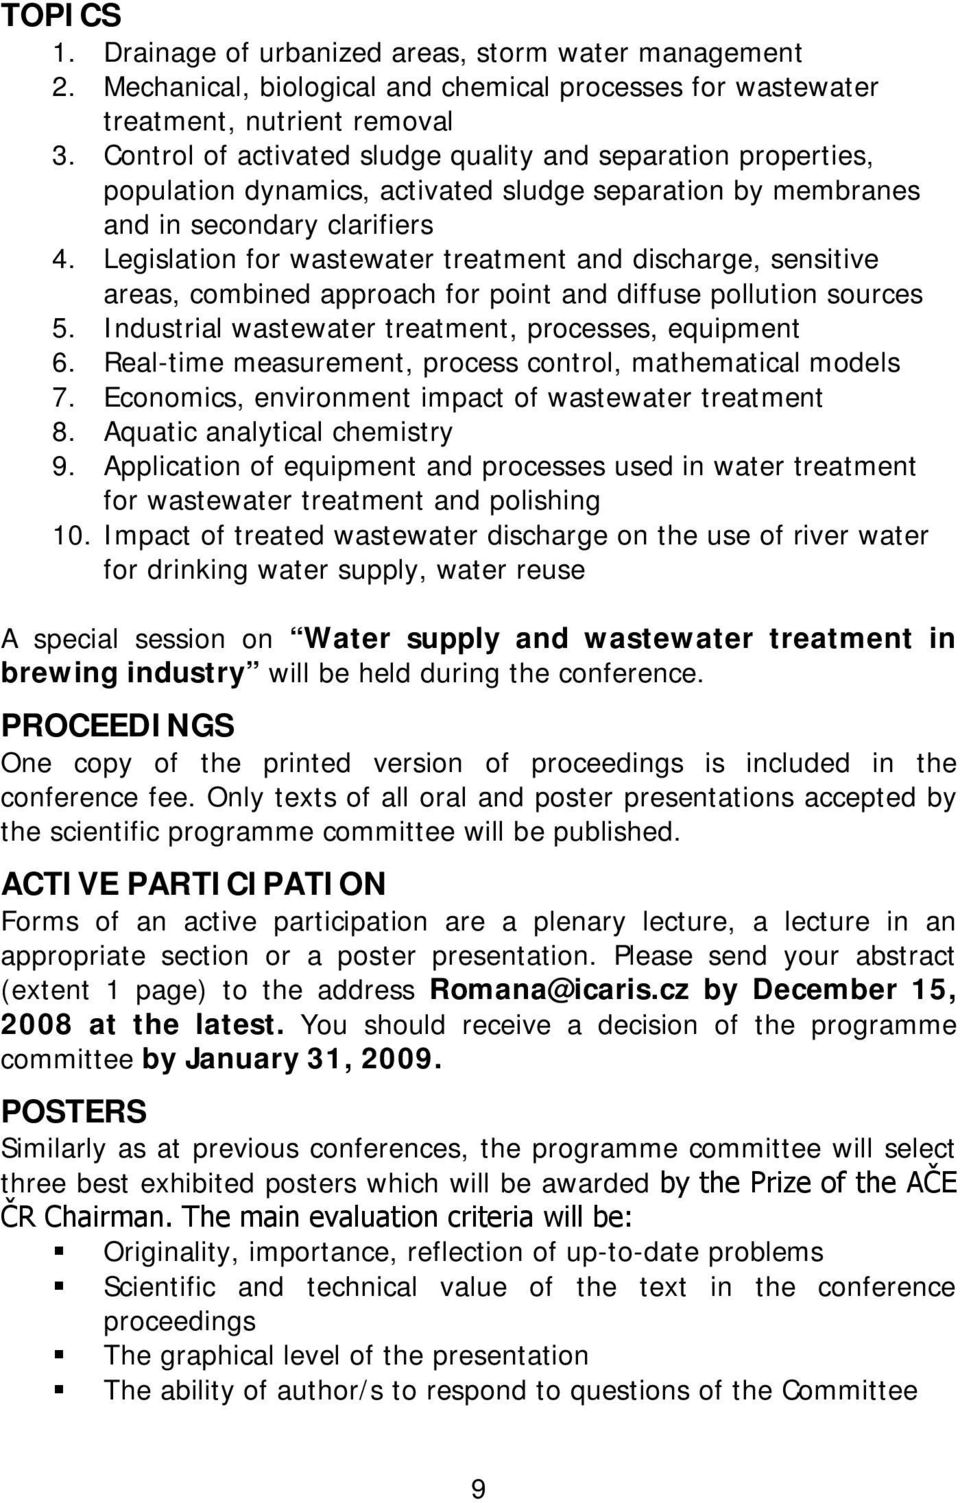 Legislation for wastewater treatment and discharge, sensitive areas, combined approach for point and diffuse pollution sources 5. Industrial wastewater treatment, processes, equipment 6.